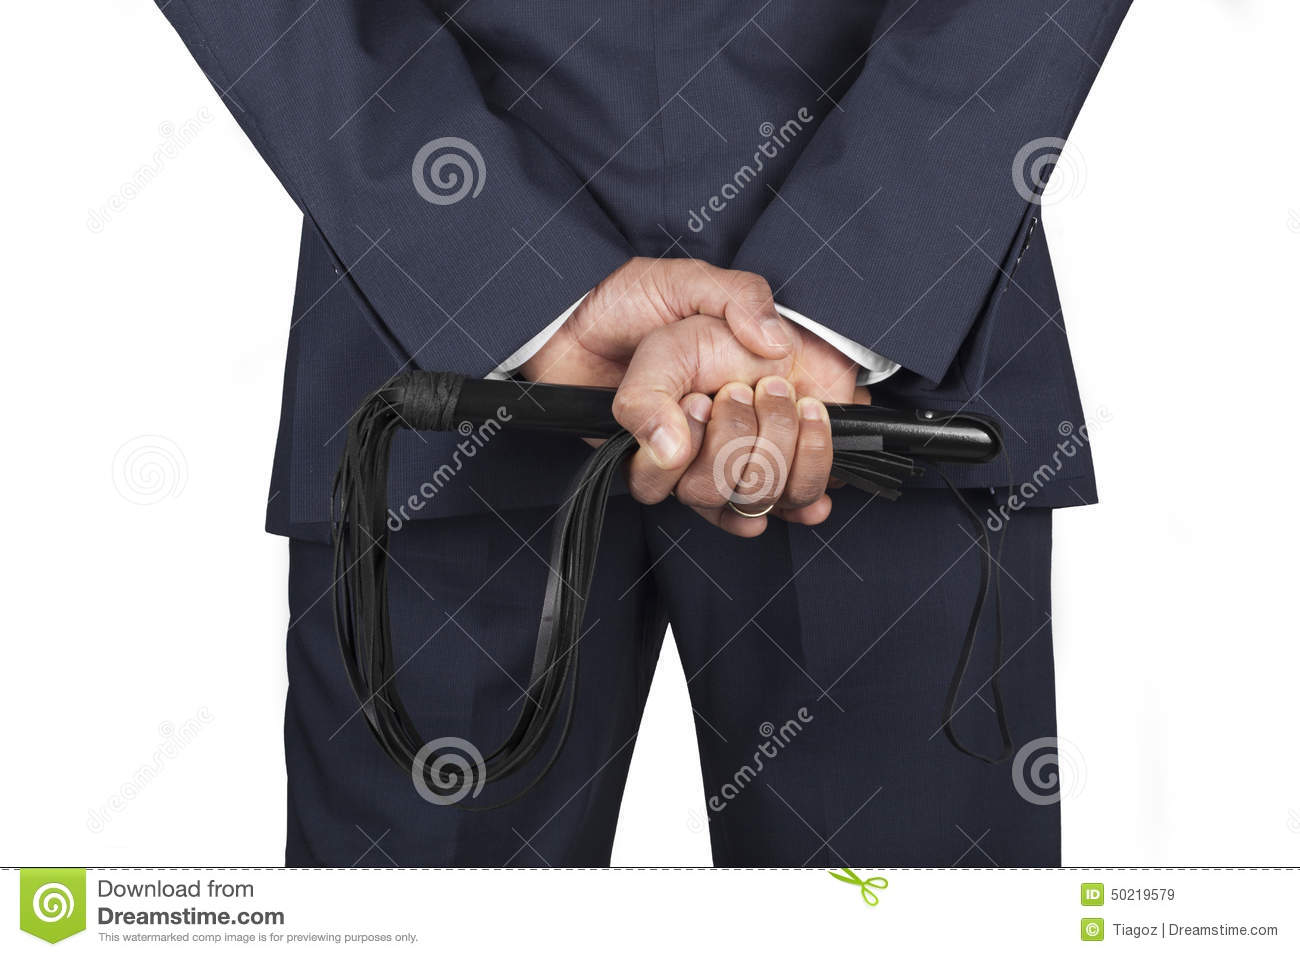 Leather Whip Held By Dominant Master In A Suit Stock Image ... Dominant Man In Suit